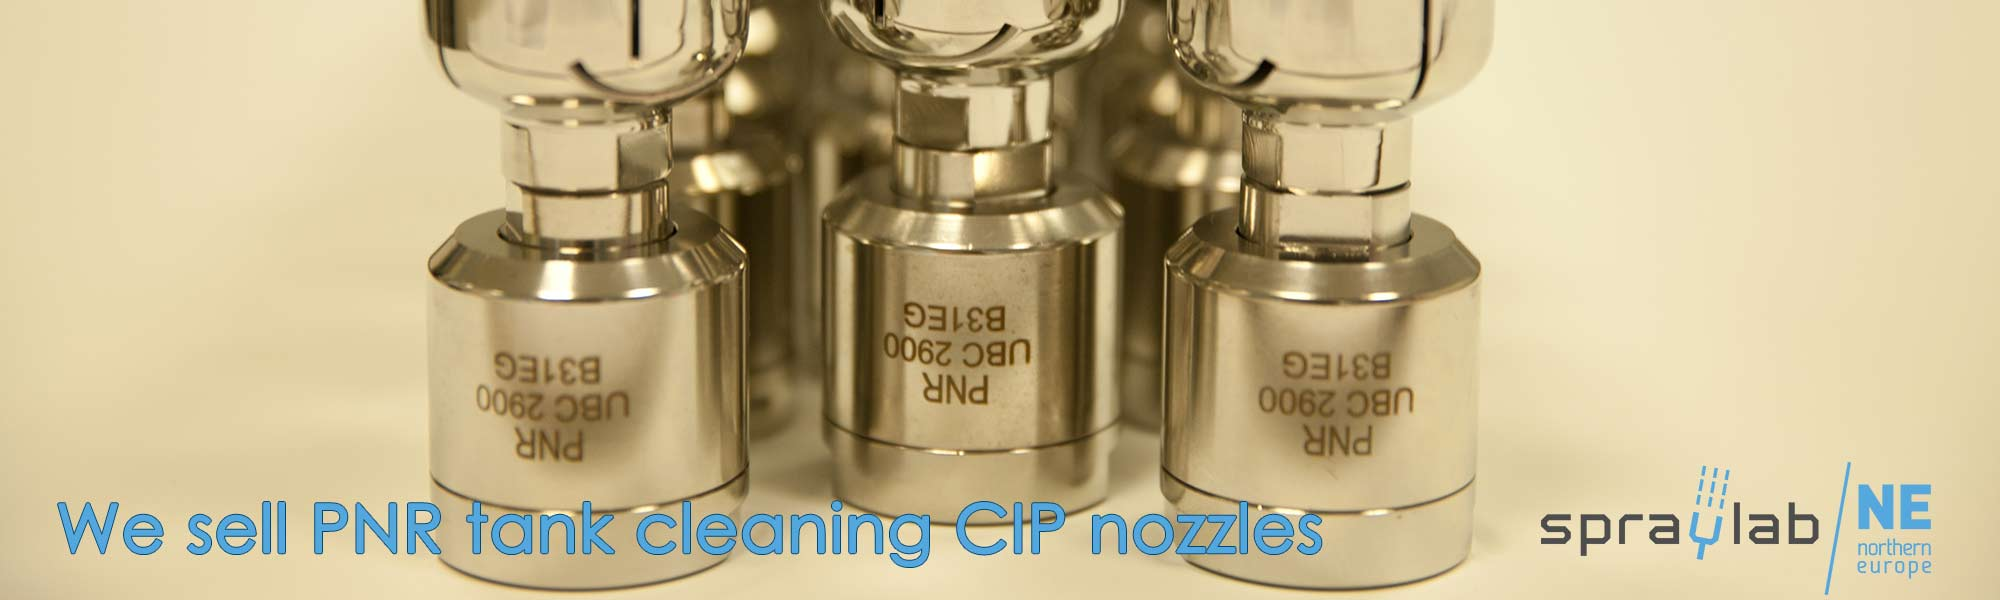 We sell PNR tank cleaning CIP nozzles